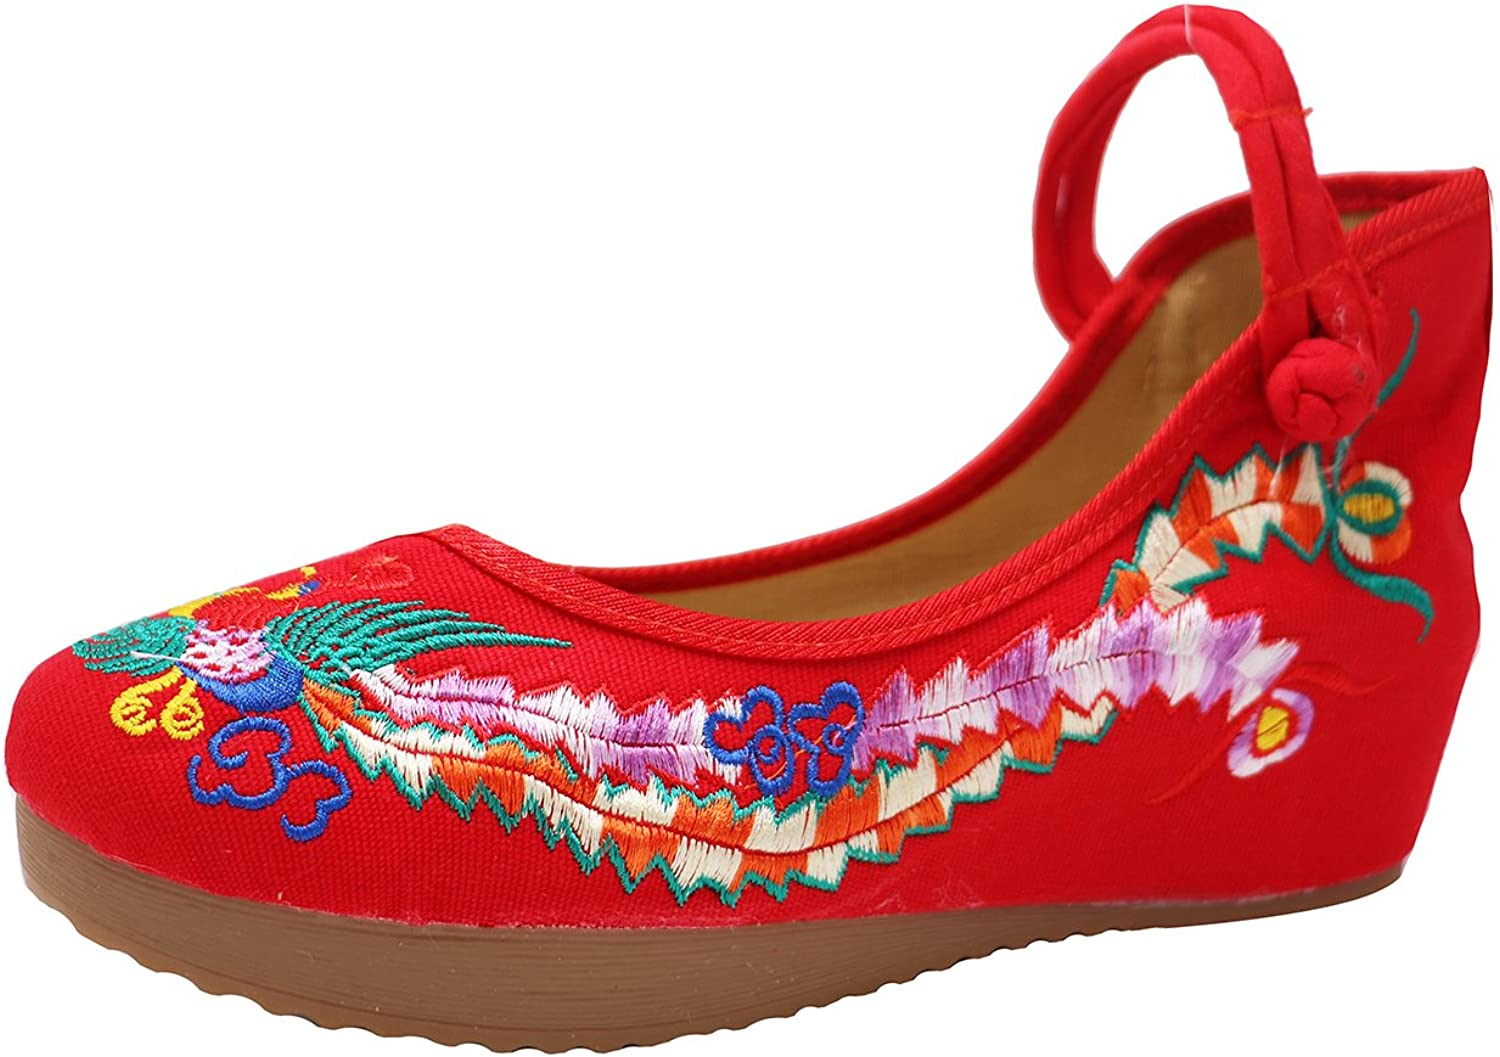 ICEGREY Liveinu Women's Handmade Embroidered Pheonix Wedge Mary Jane shoes